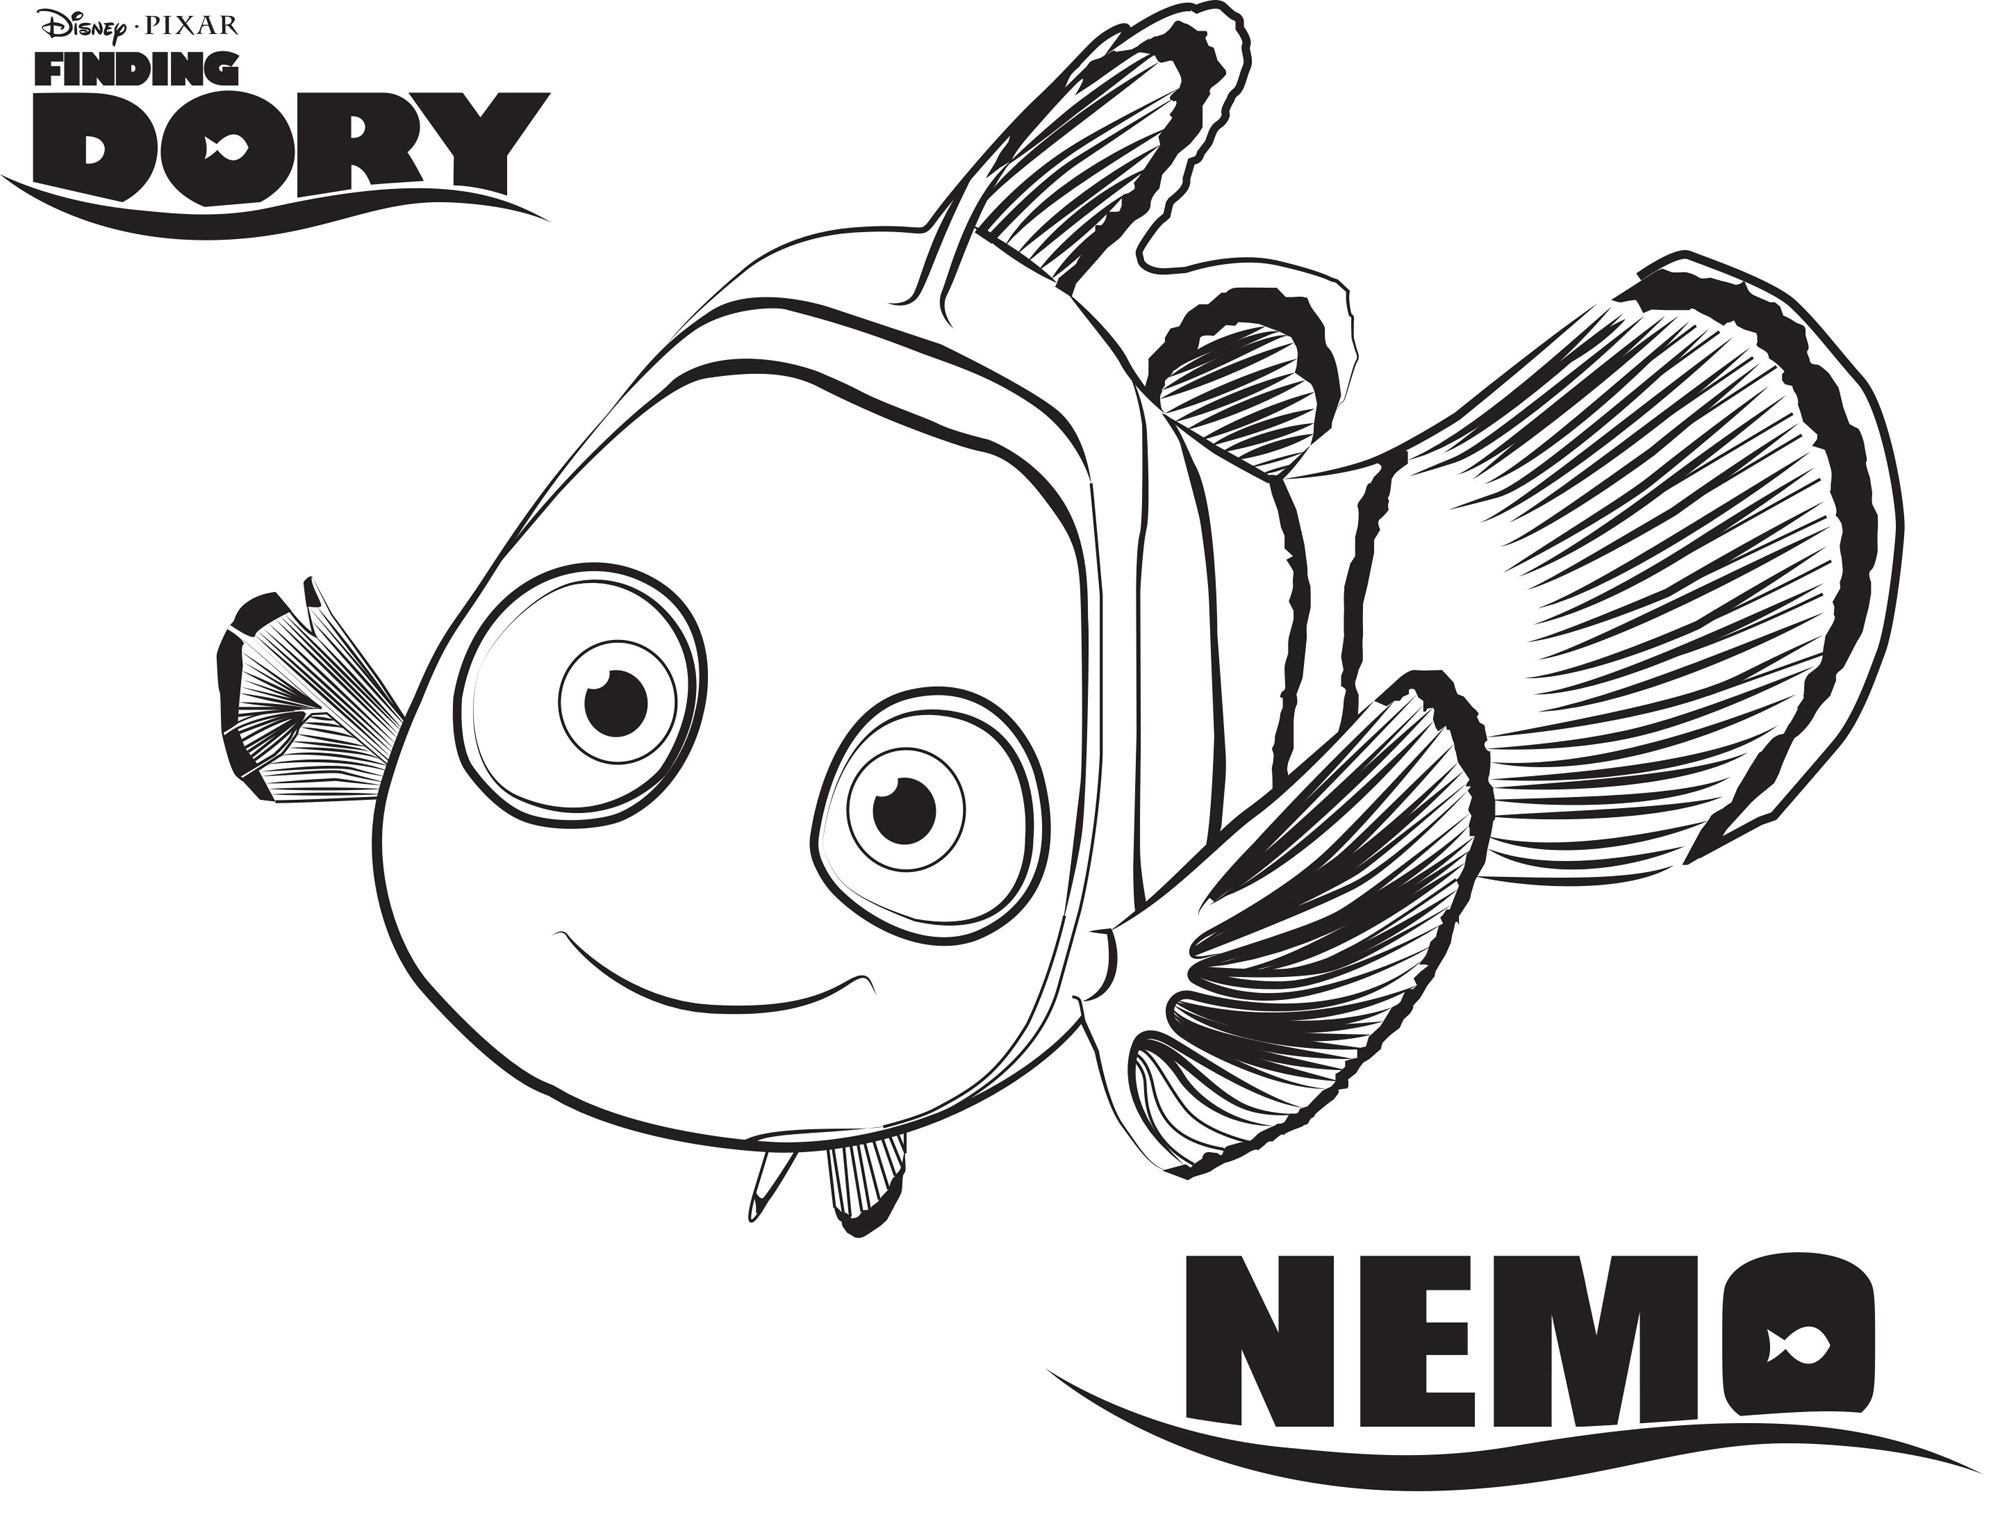 Nemo Y Dory Para Colorear: Finding Dory Coloring Pages